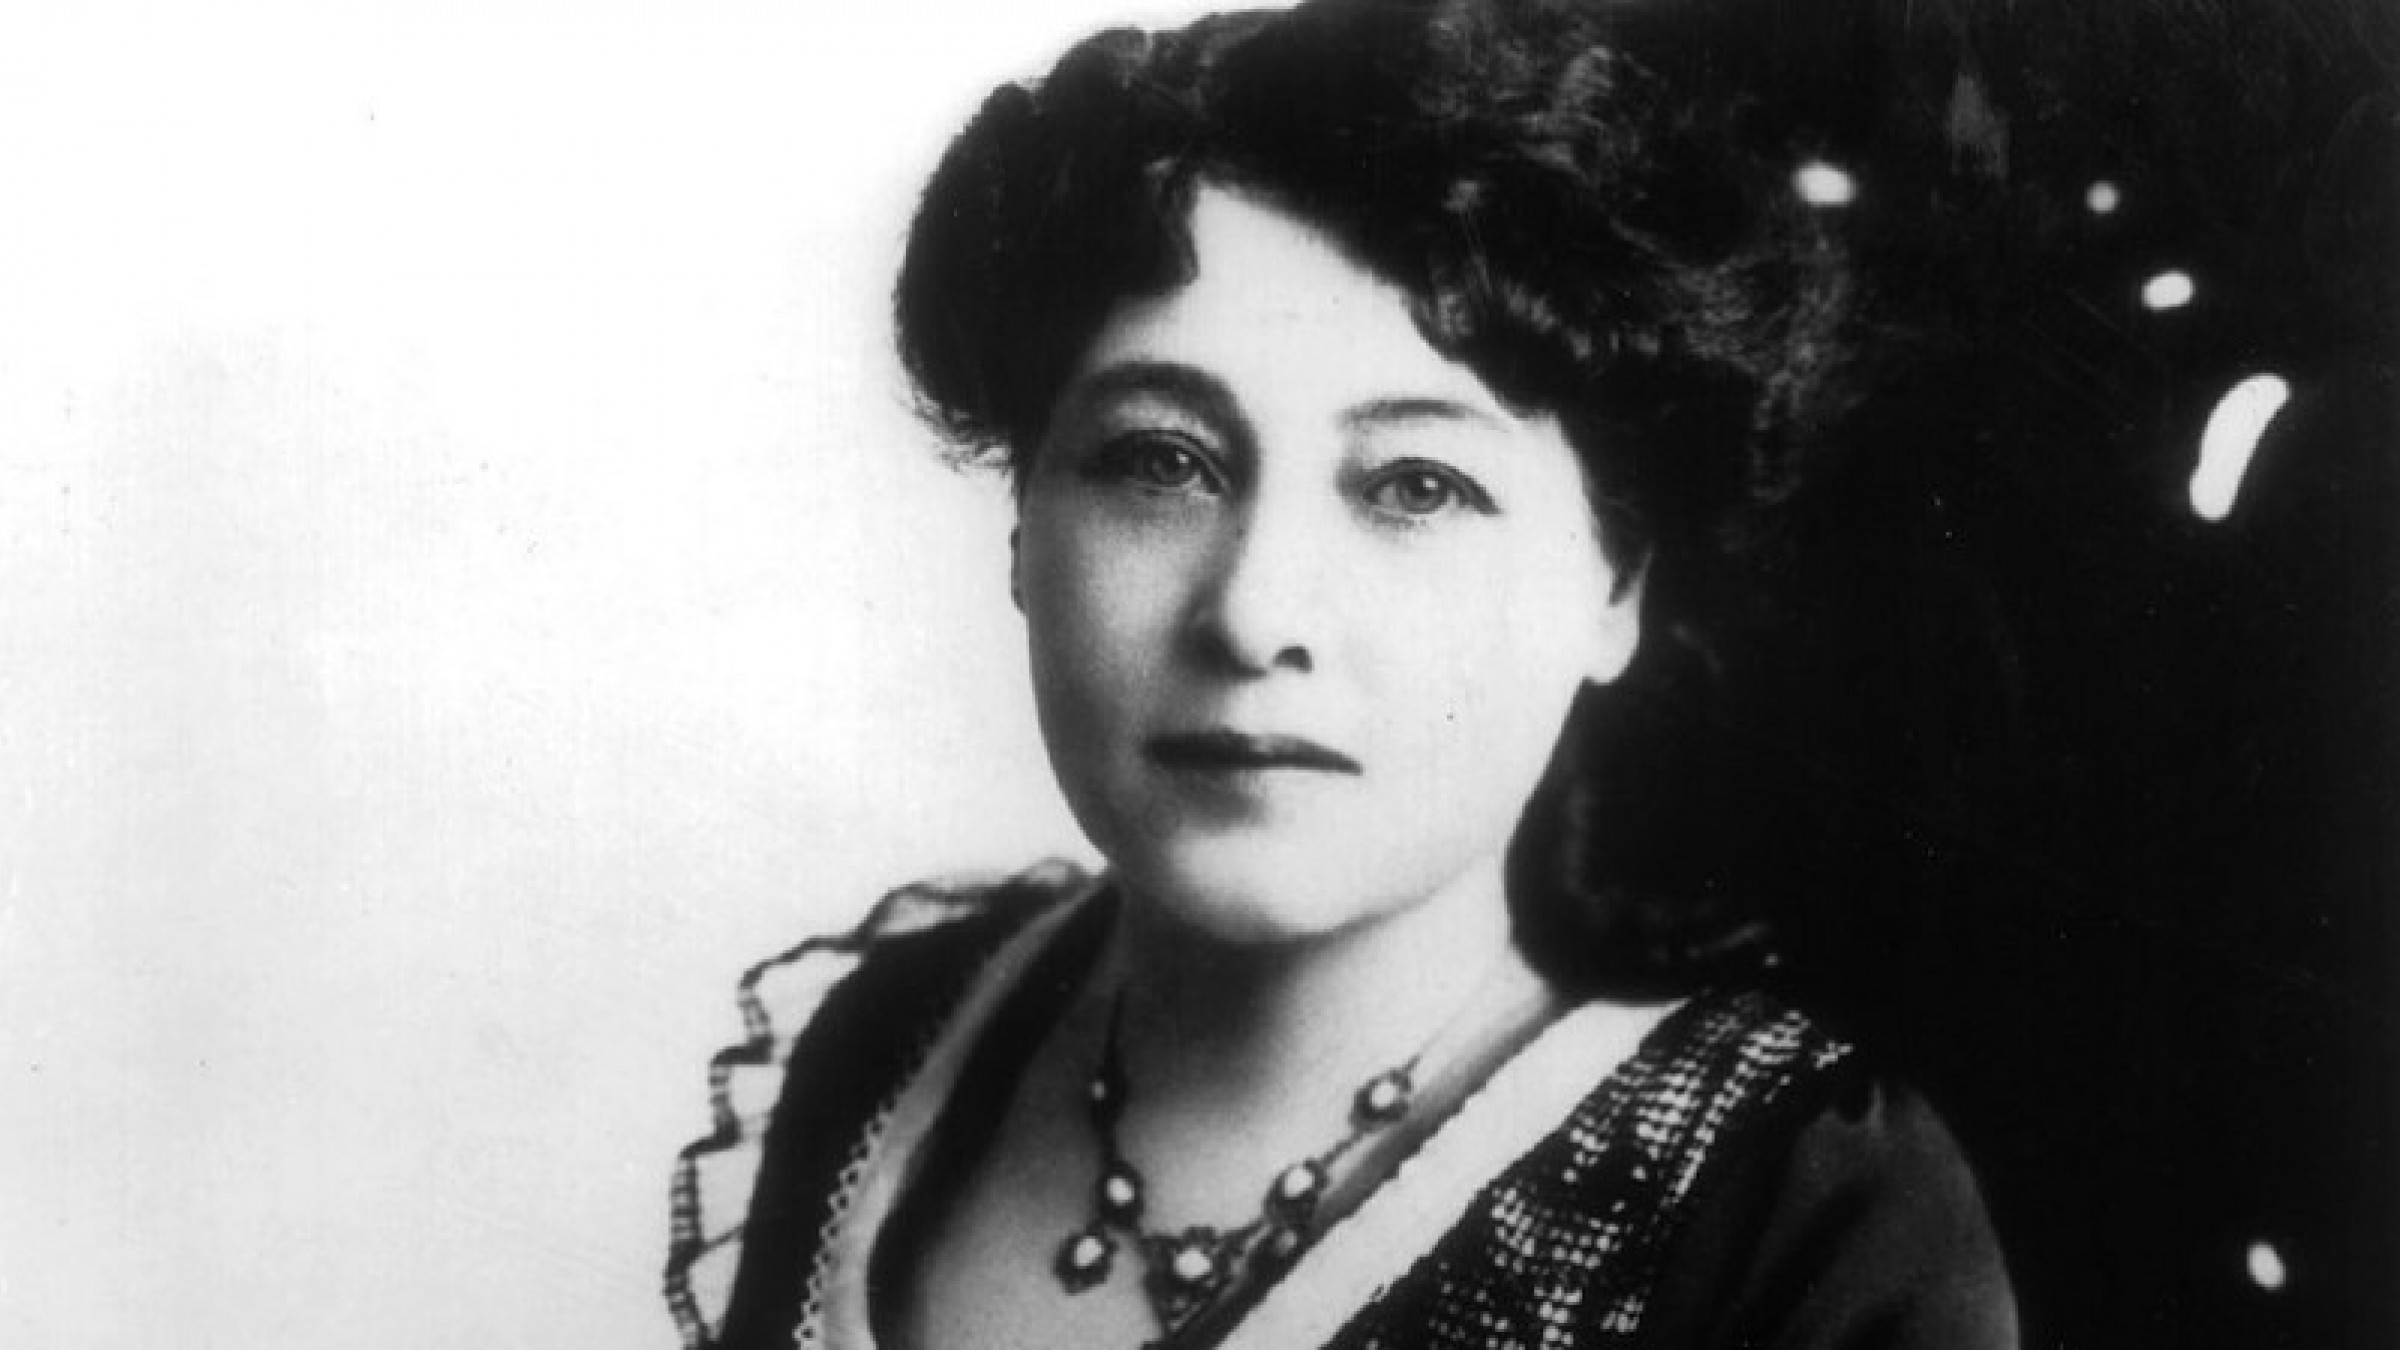 Alice Guy-Blaché, the World's First Female Filmmaker, Wrote, Directed, and Produced Over 700 Films